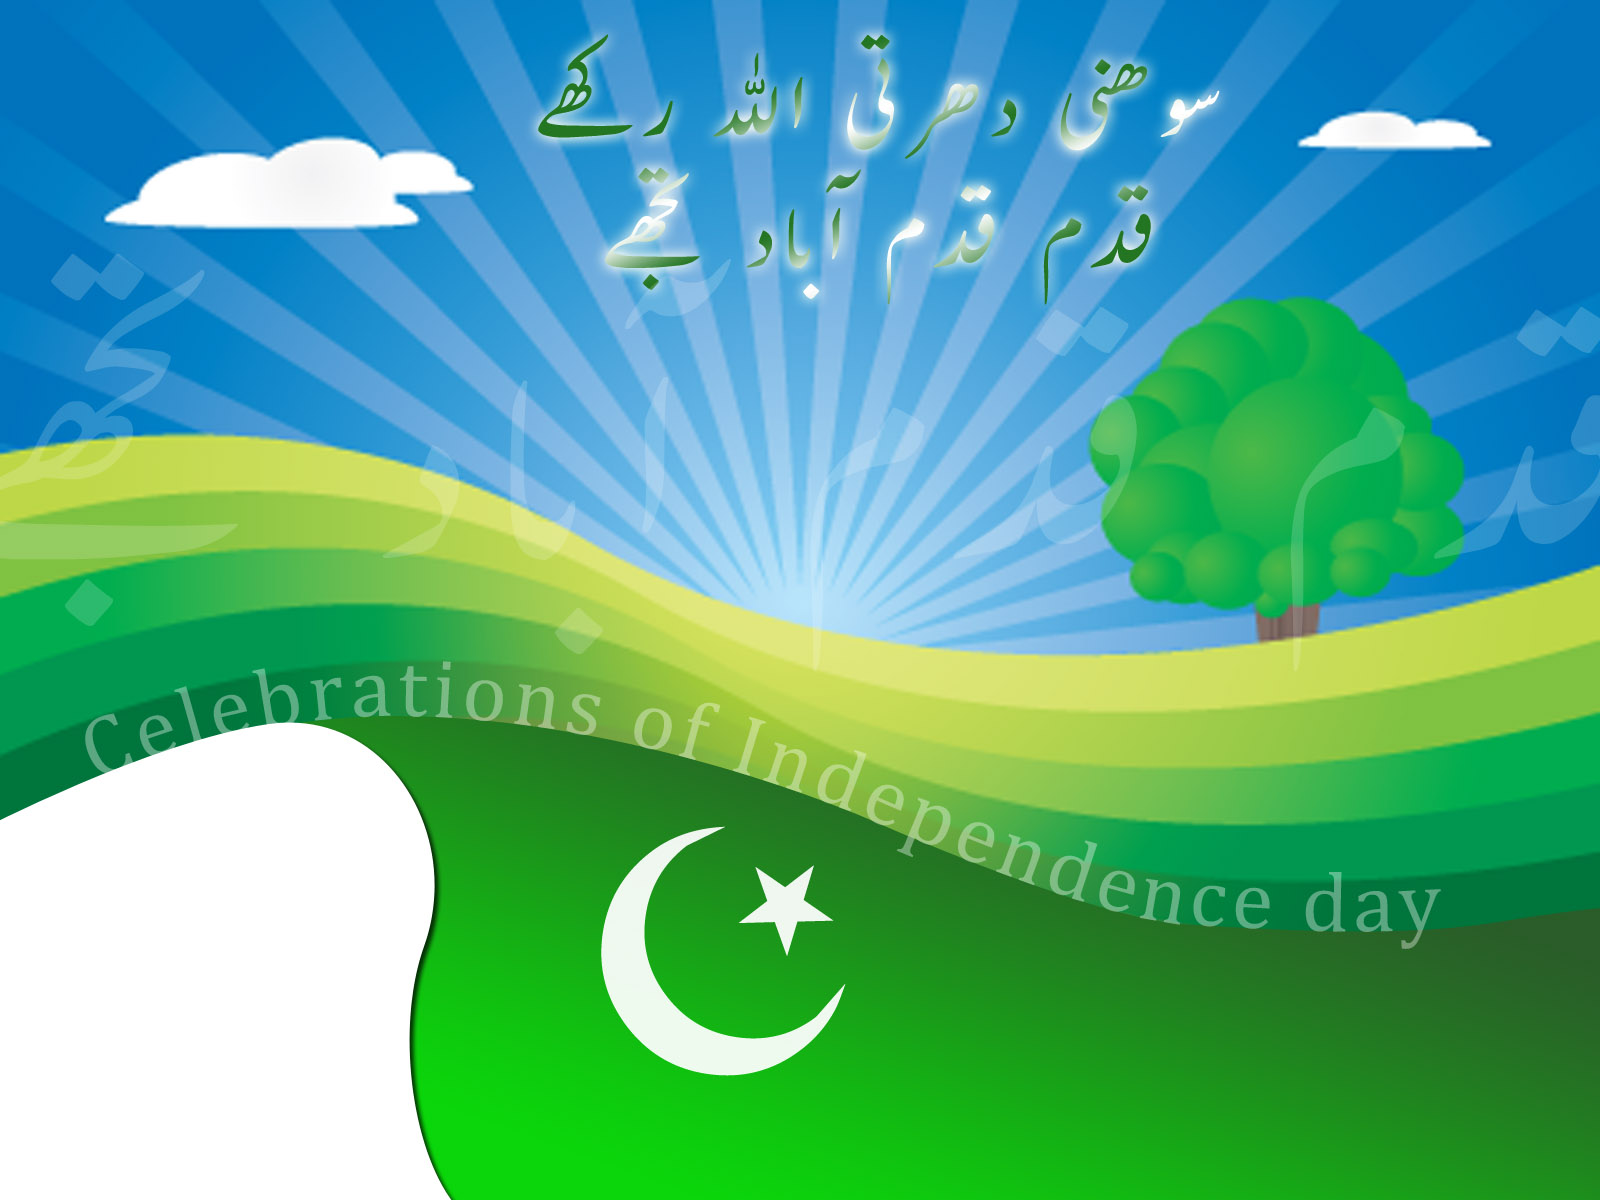 Allama Iqbal Wallpapers Hd Pakistan Independence Day Independence Day Pakistan 14